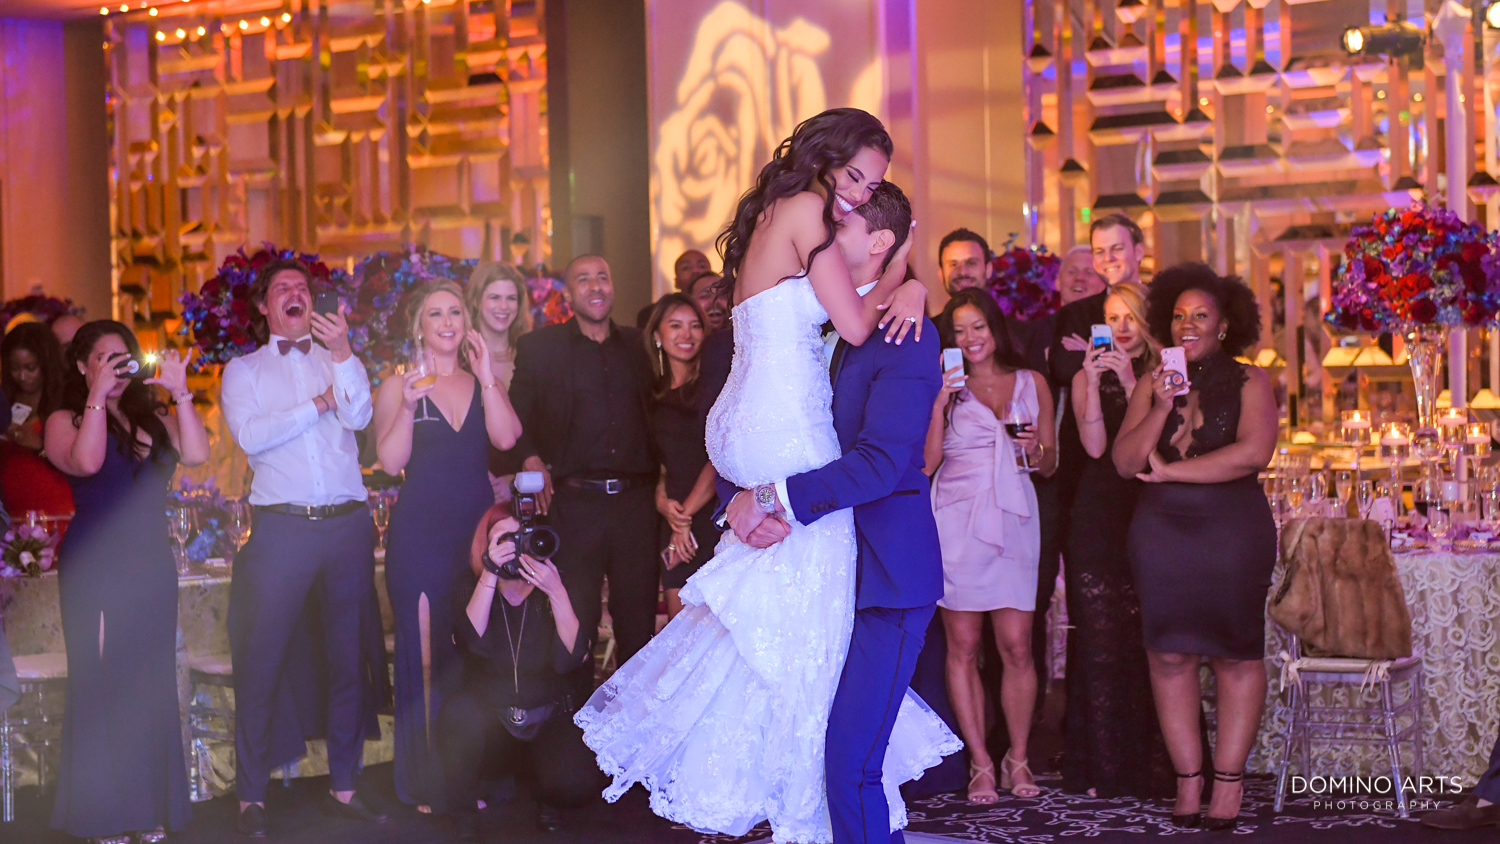 Best wedding picture of bride and groom first dance at The St. Regis Bal Harbour